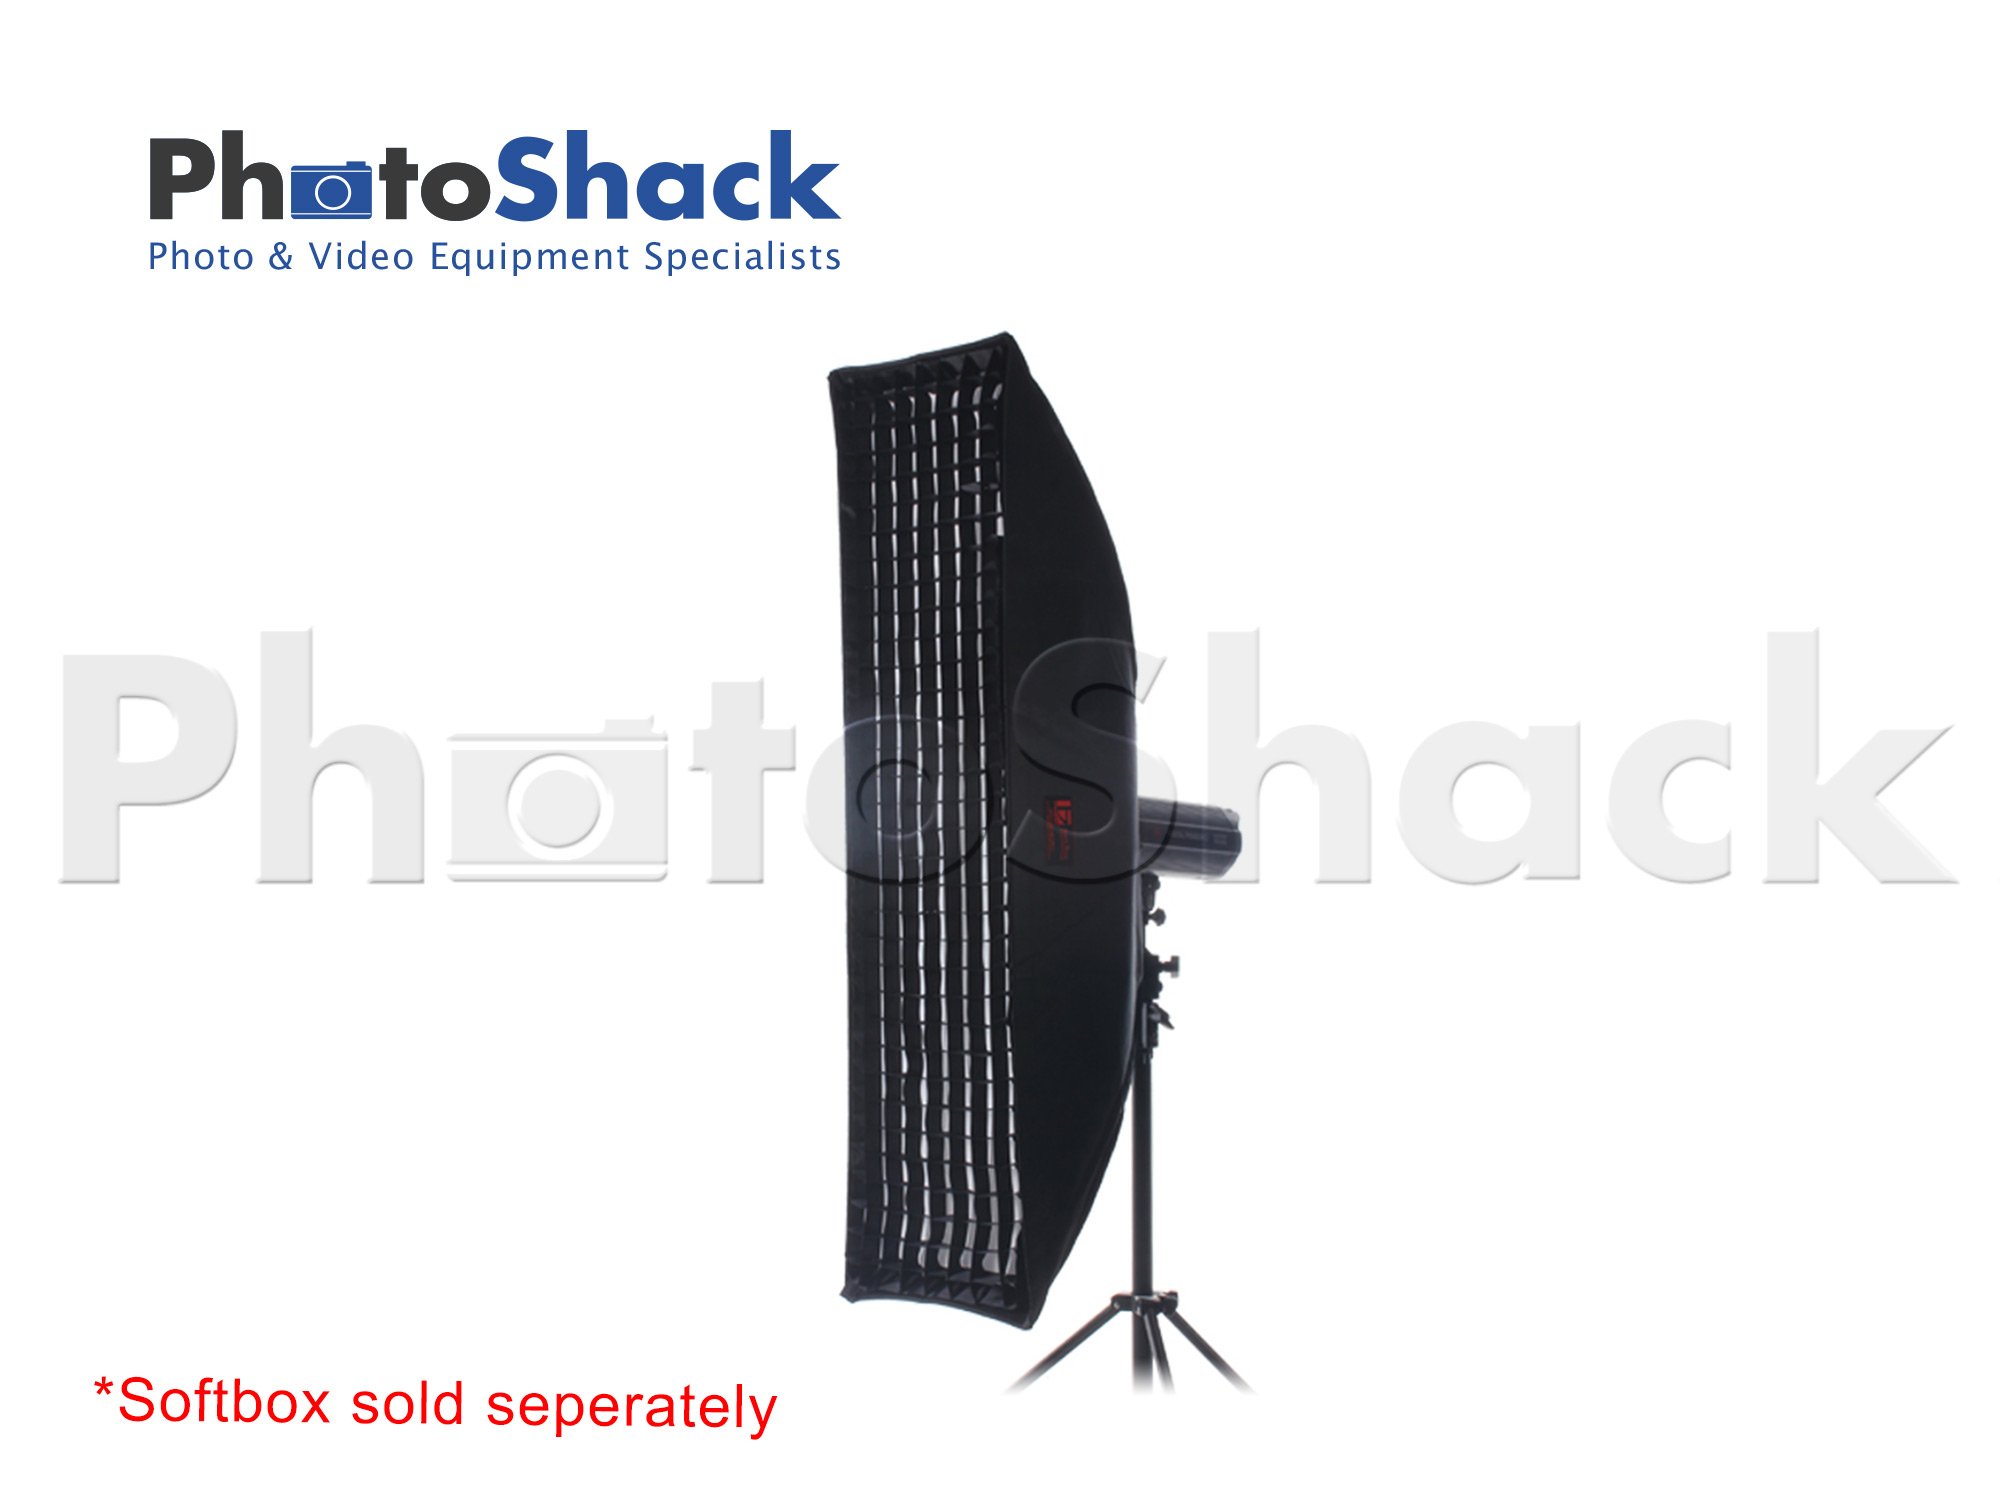 Grid for Portable Folding Softbox - Strip light 35x150mm